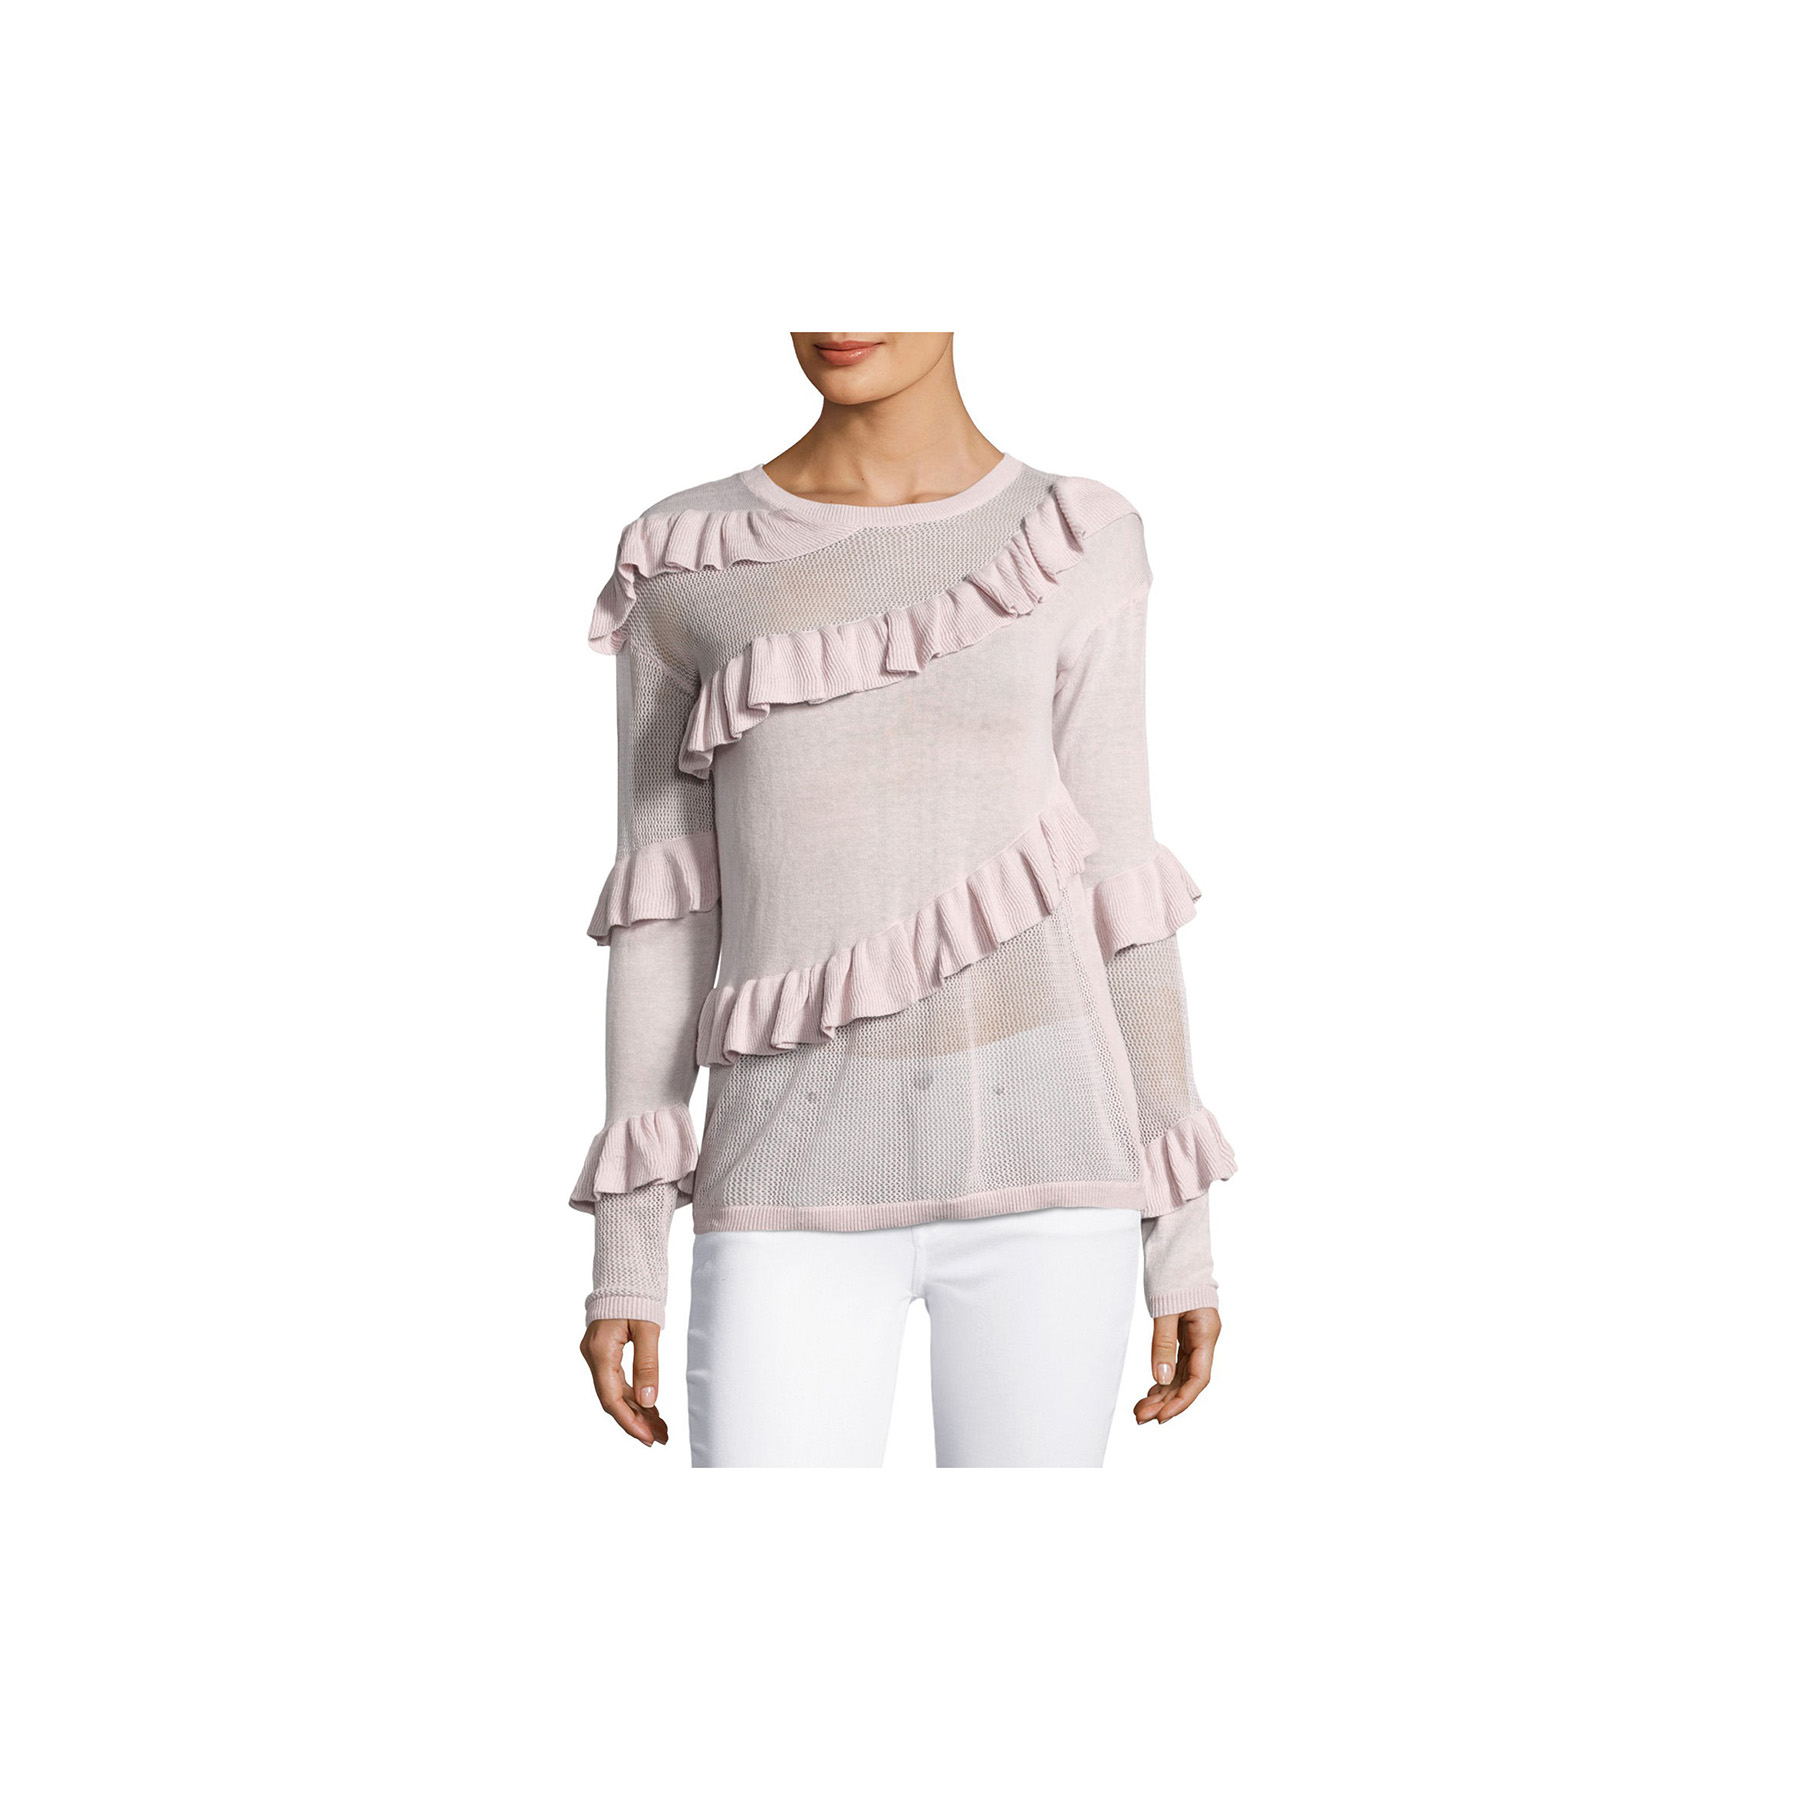 Marled by Reunited Clothing Ruffled Crewneck Sweater